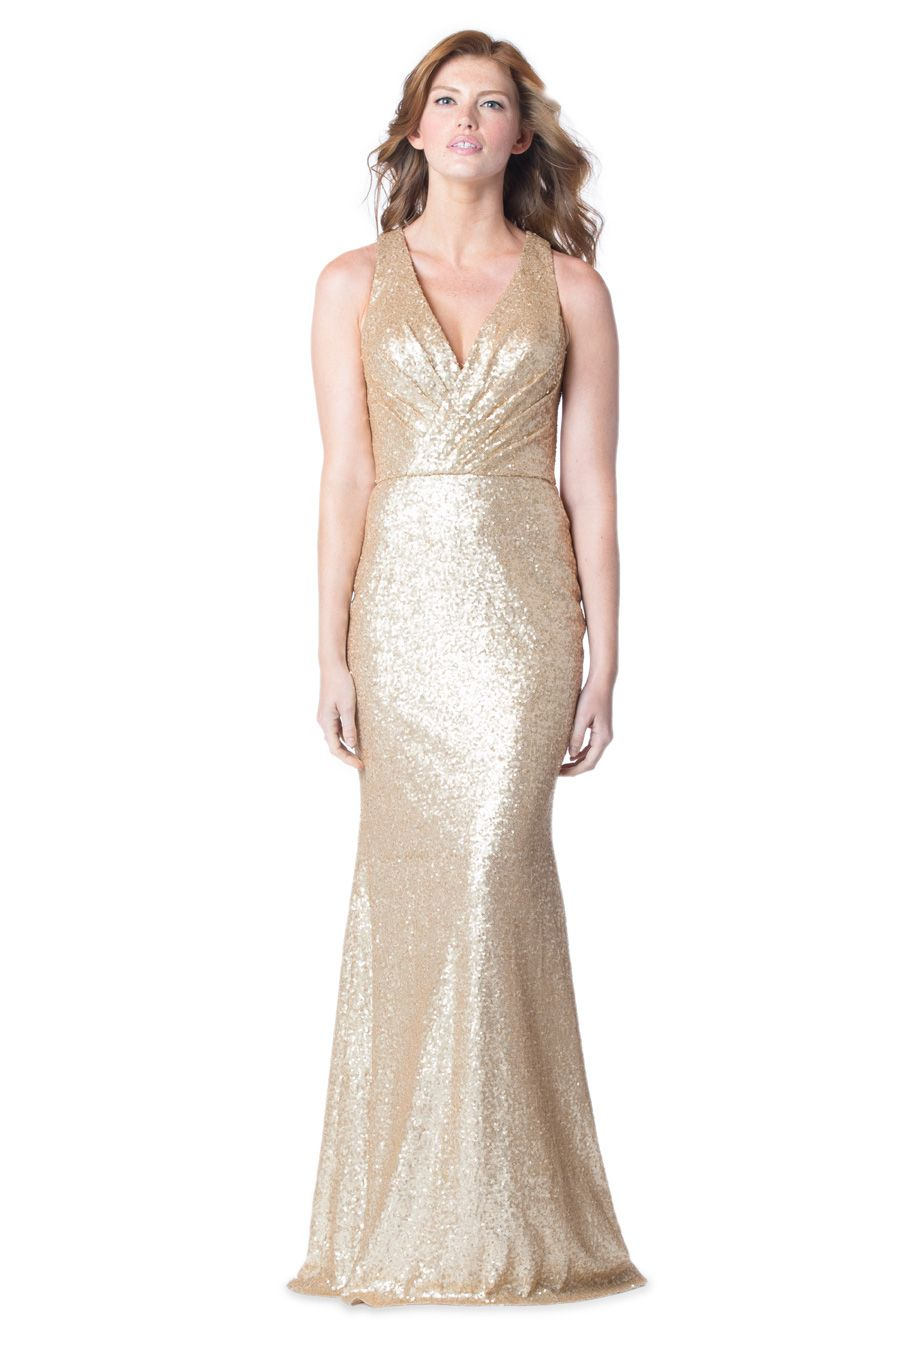 Bridesmaid dress available at ella park bridal newburgh in bridesmaid dress available at ella park bridal newburgh in 8128531800 ombrellifo Choice Image